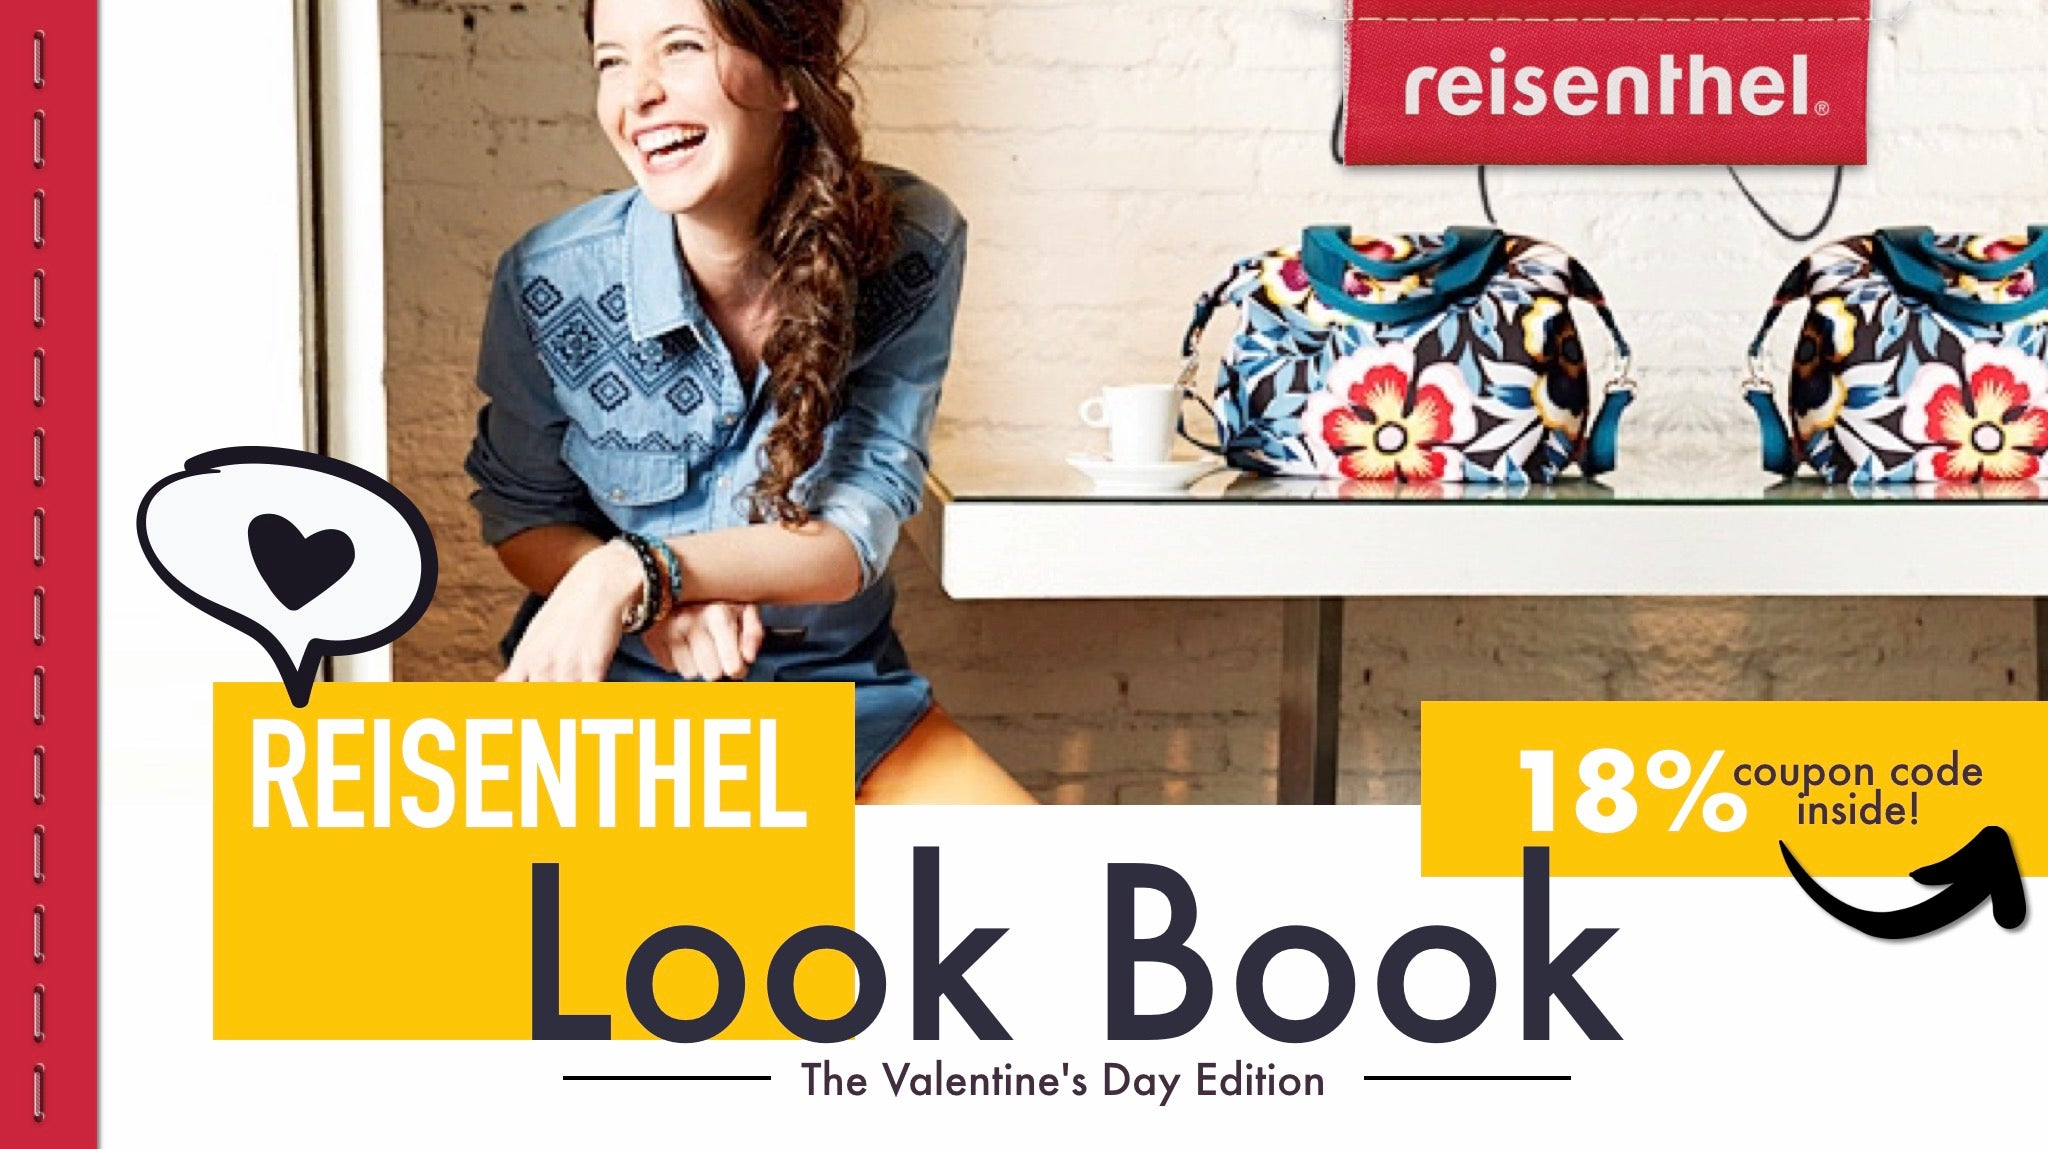 reisenthel® Singapore Look Book Valentine's Day Edition